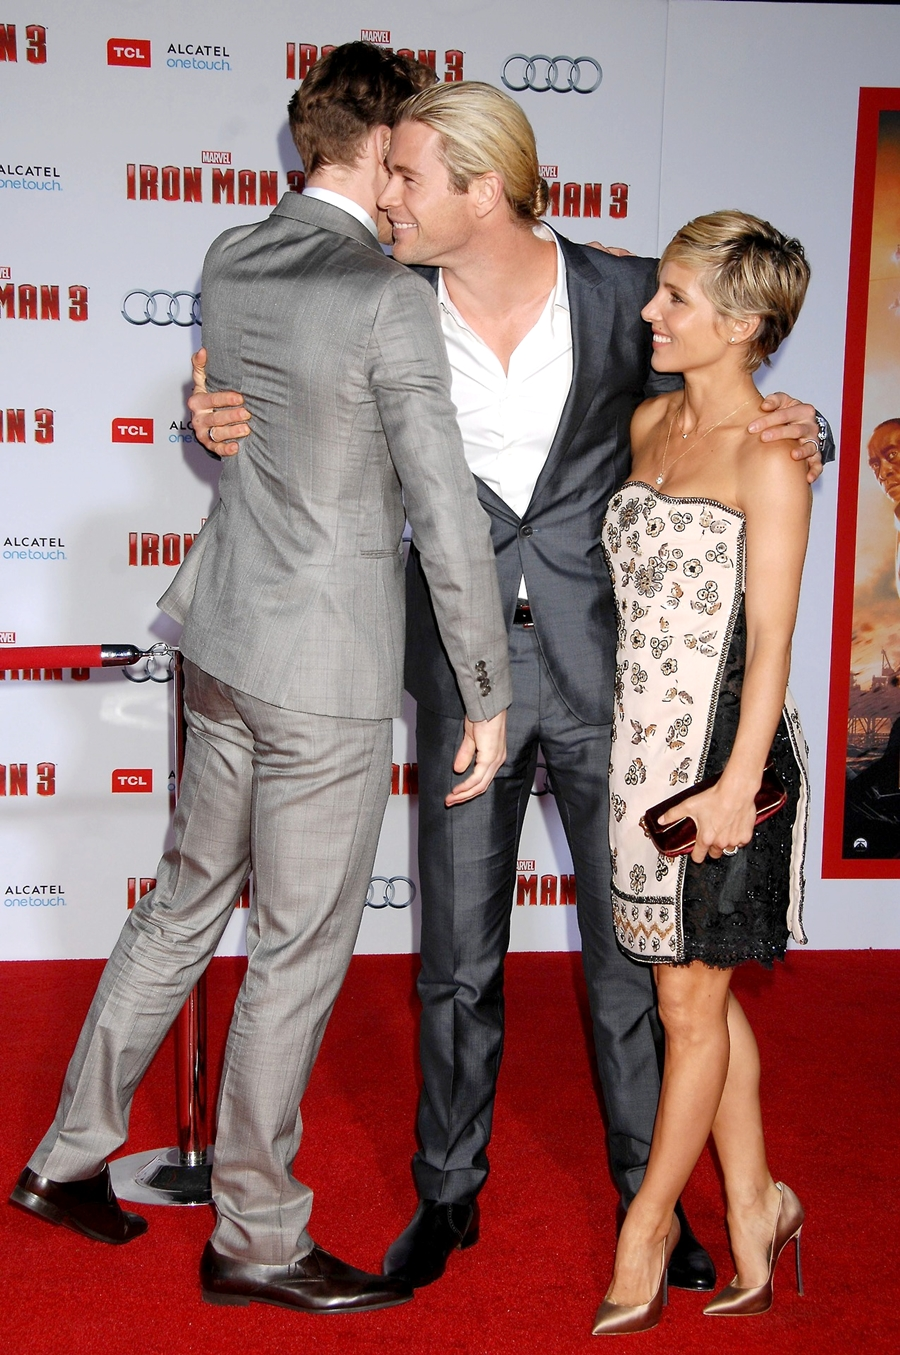 Chris Hemsworth Attends 'IRON MAN 3' Premiere | Camara Oscura